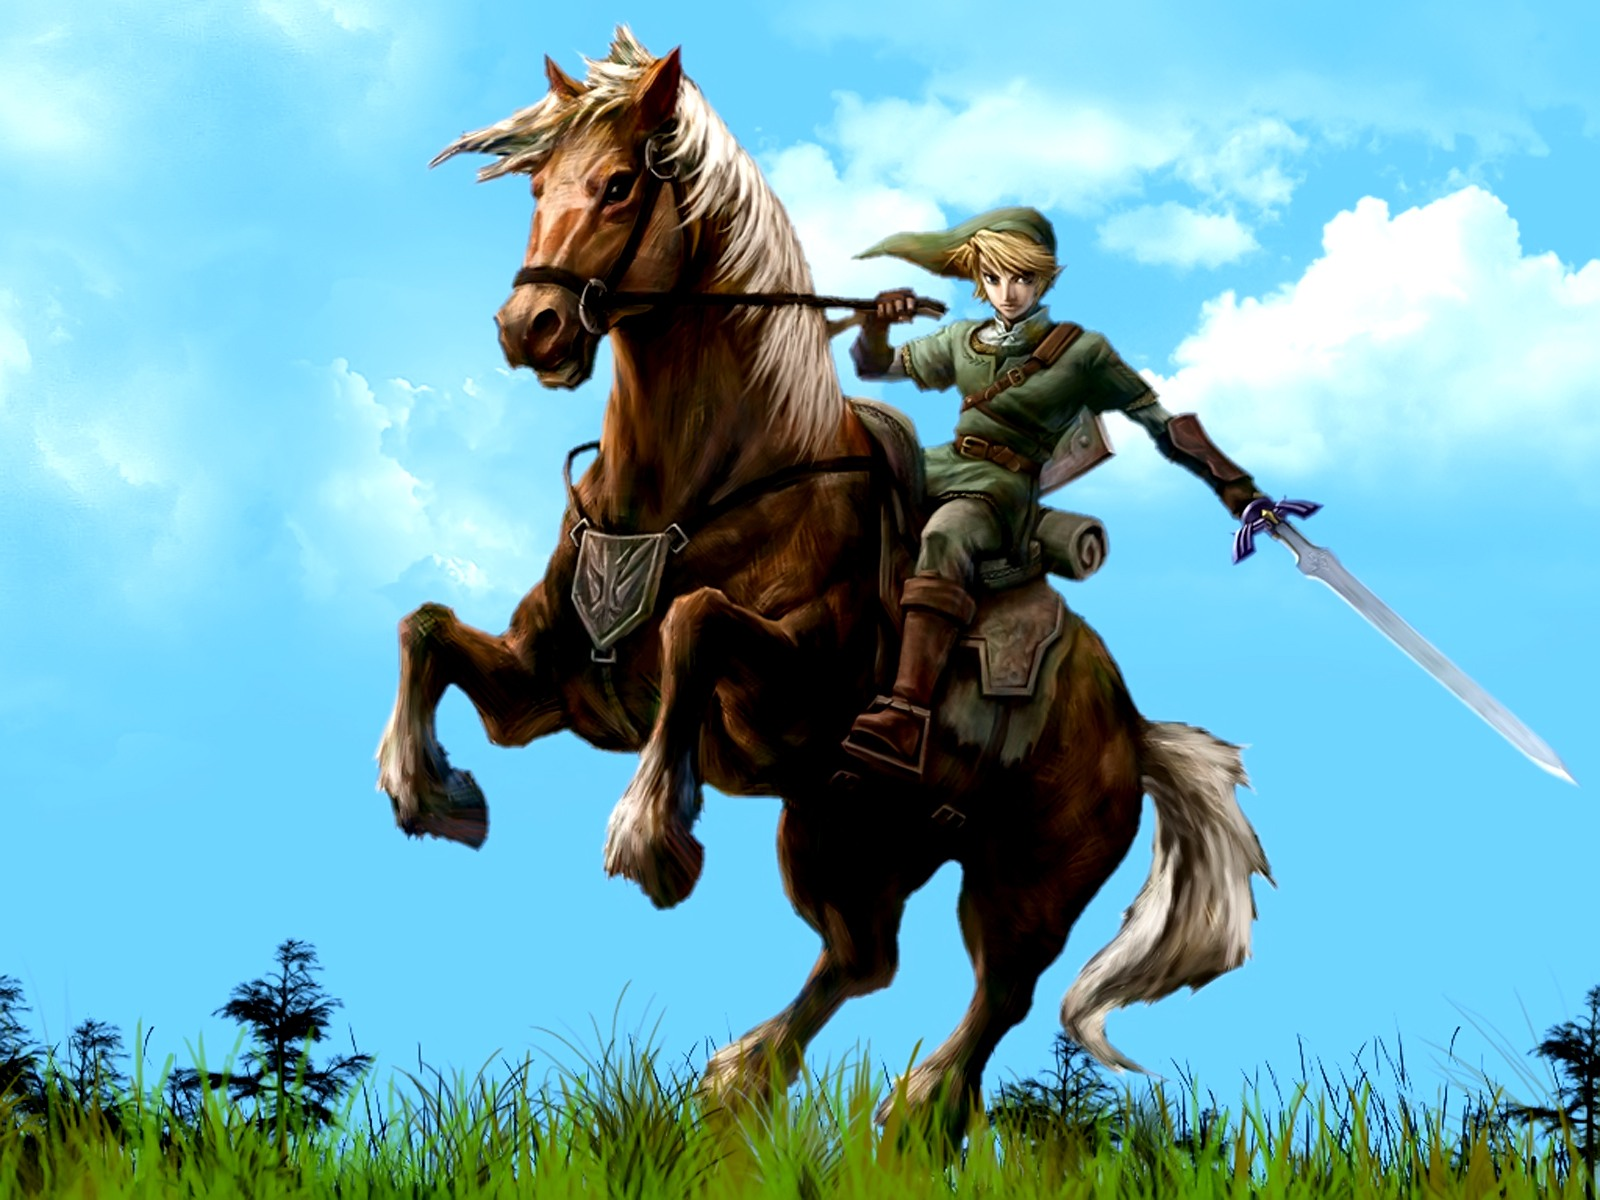 Legend of Zeldas Link desktop wallpaper 1600x1200